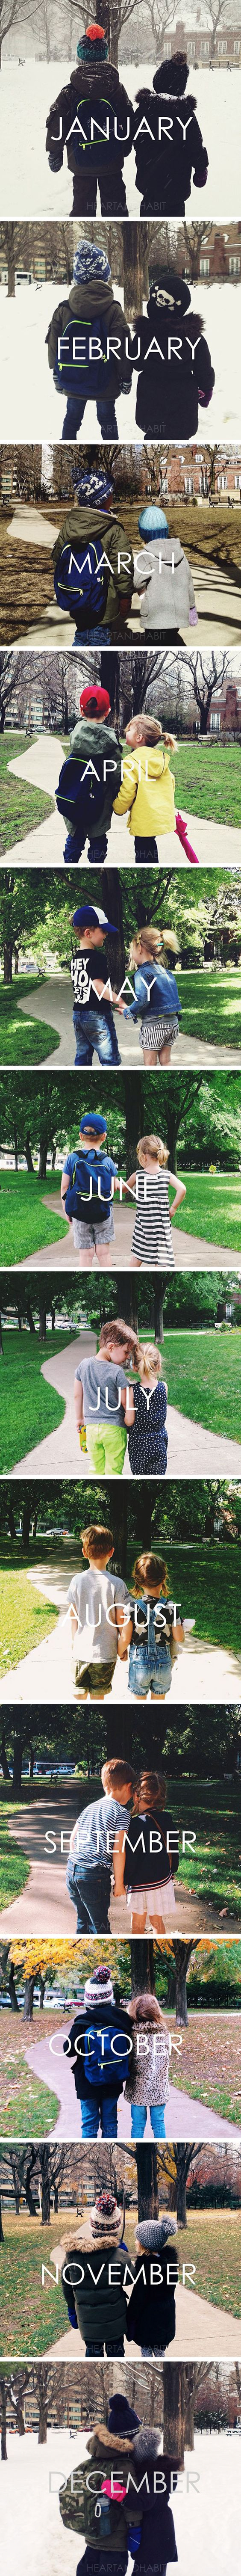 moments to remember, a photo a month, photo project, month to month changes, kids growing